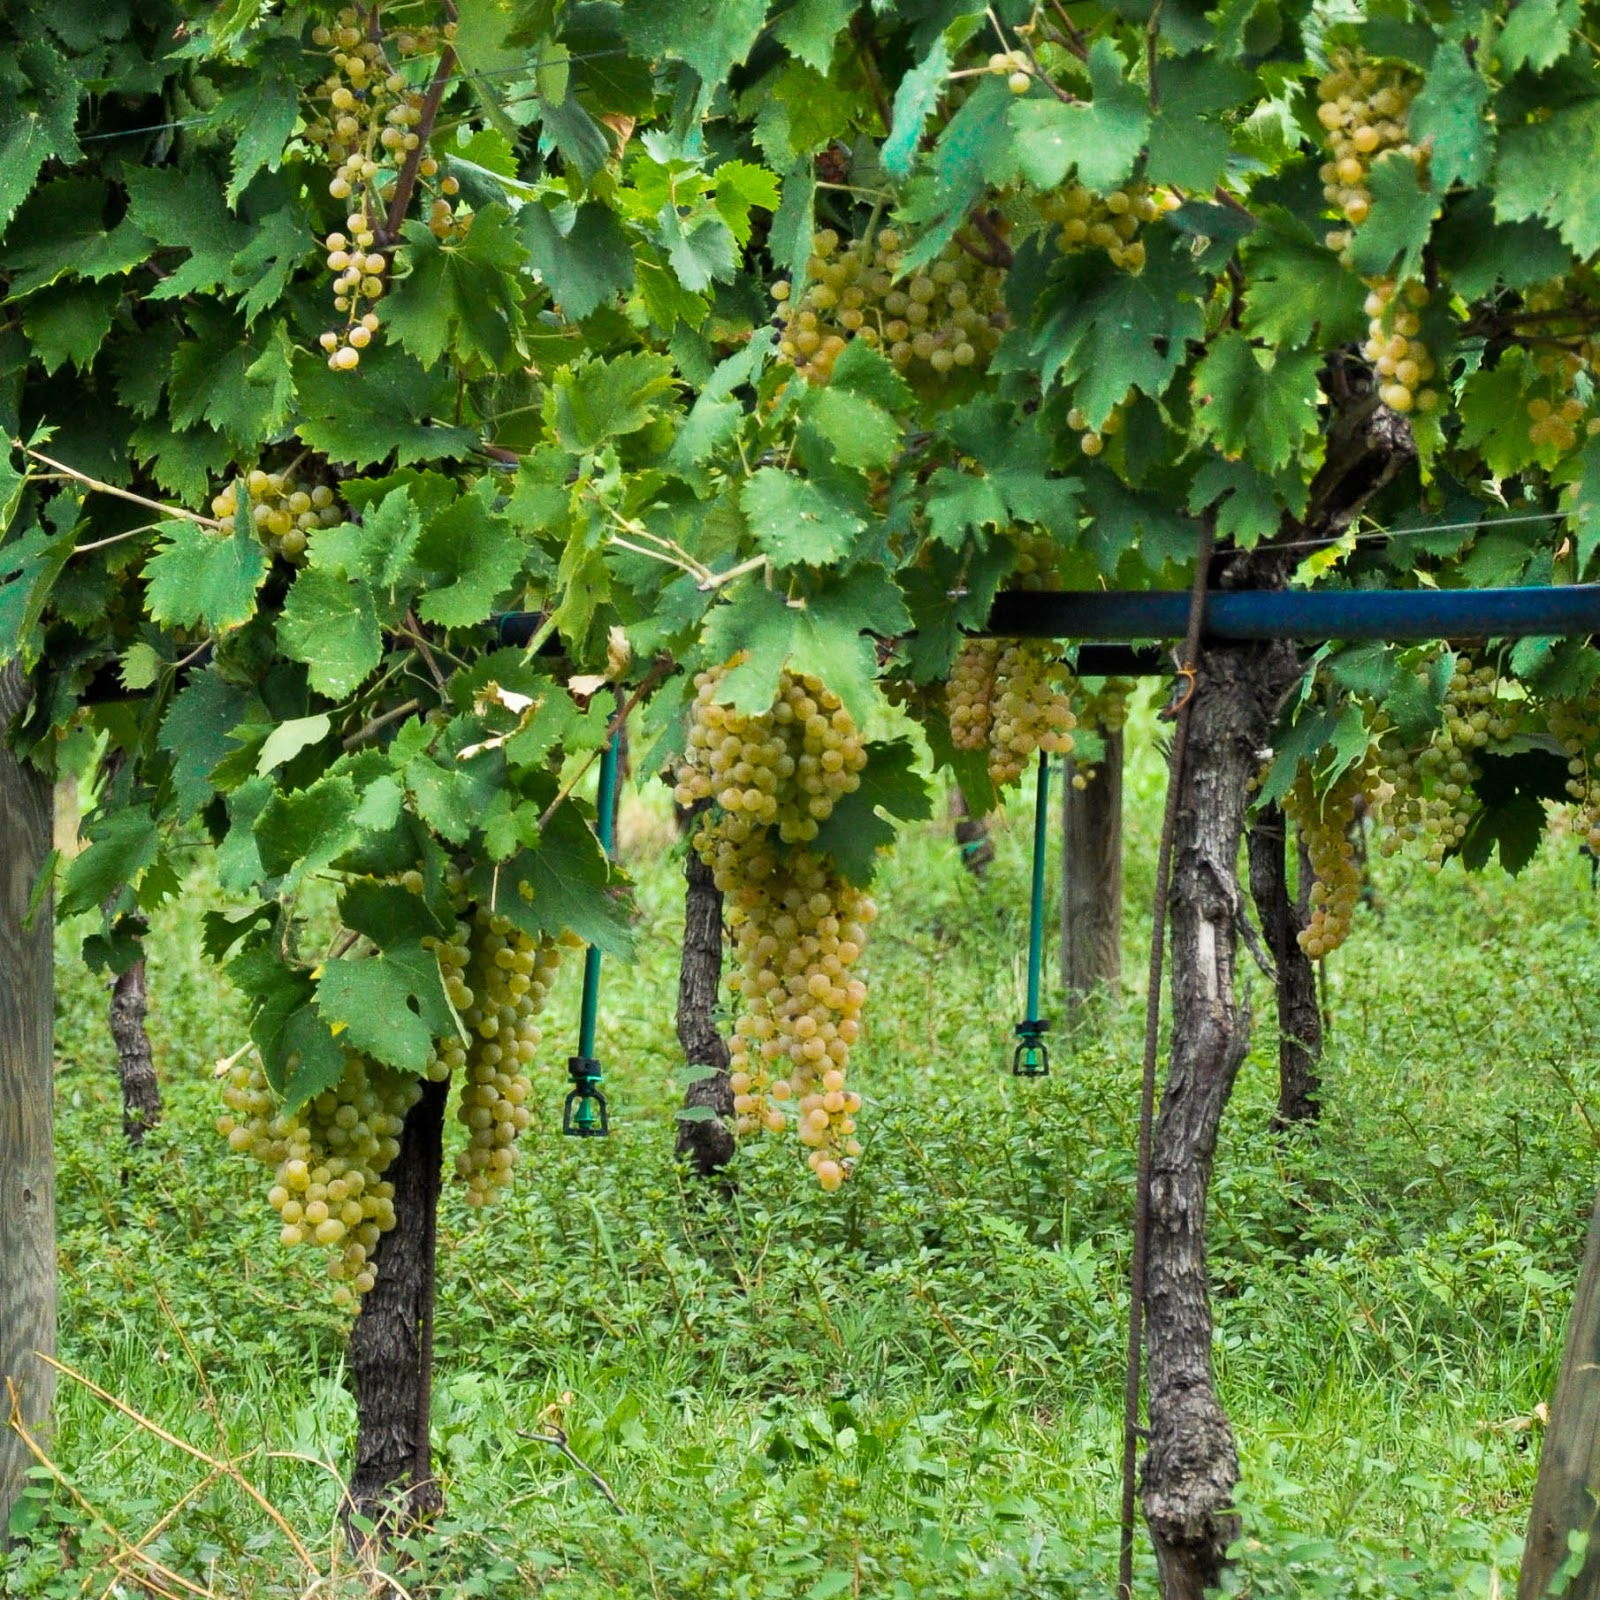 Grapes on the vine, Soave, Veneto, Italy